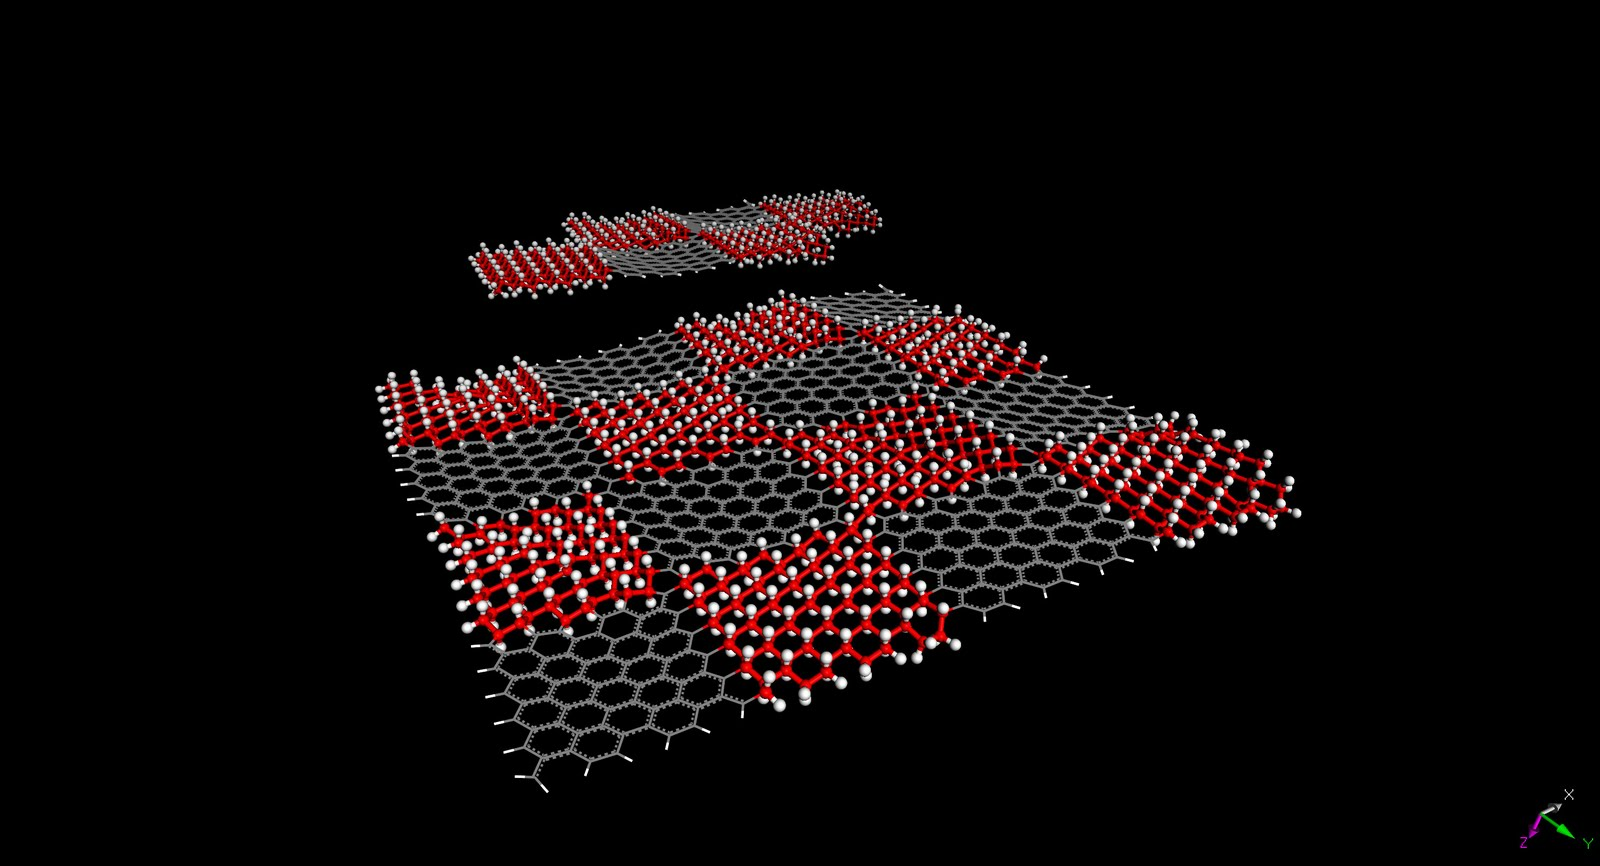 Graphene-based chemical sensors, thermoelectric devices and metamaterials